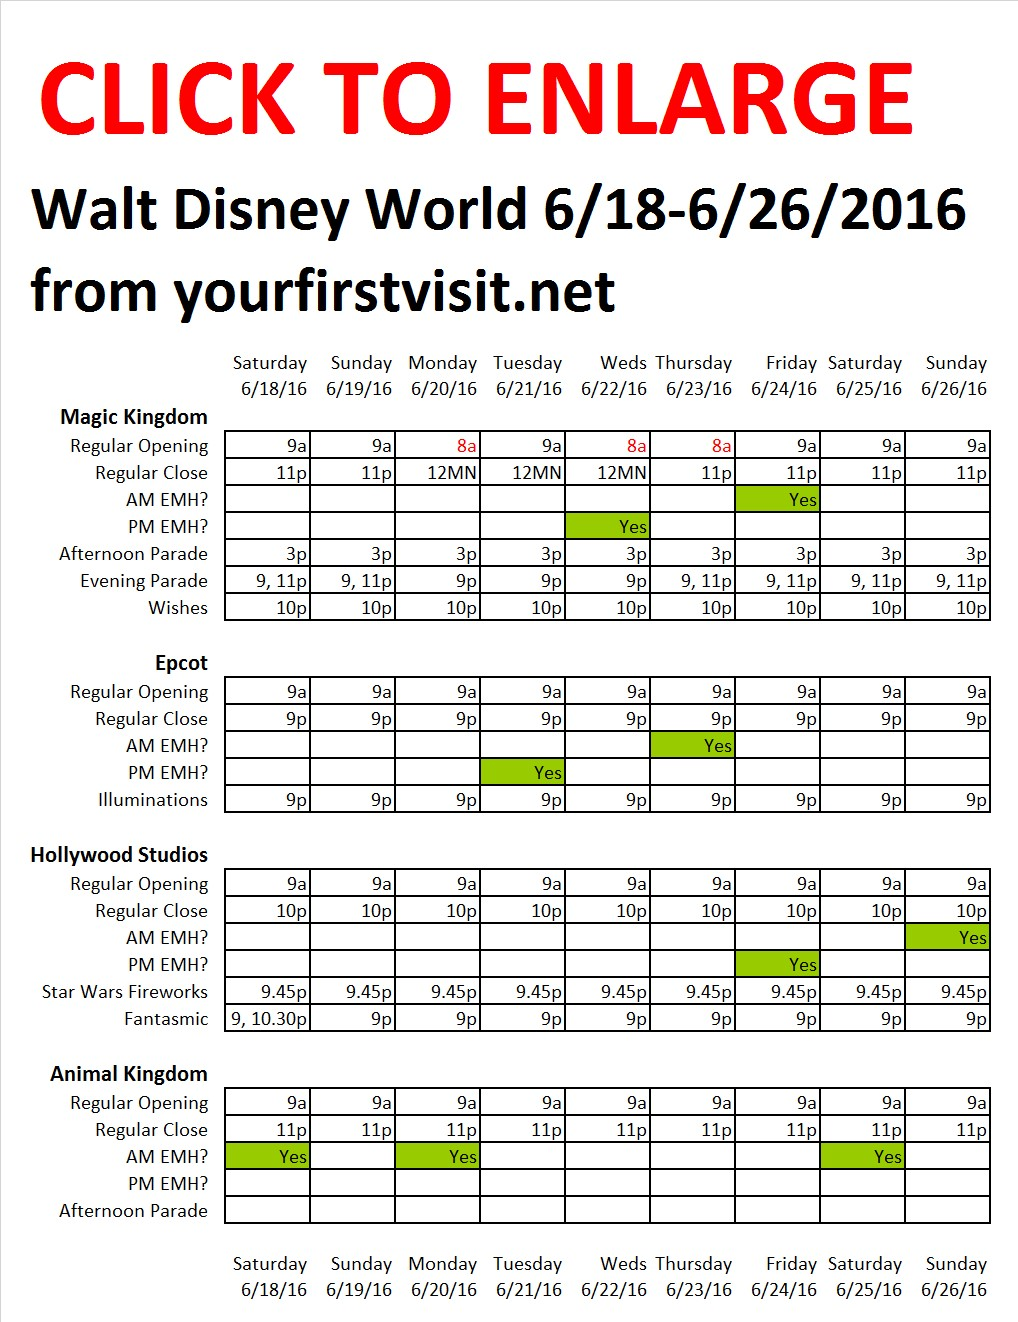 Disney World 6-18 to 6-26-2016 from yourfirstvisit.net